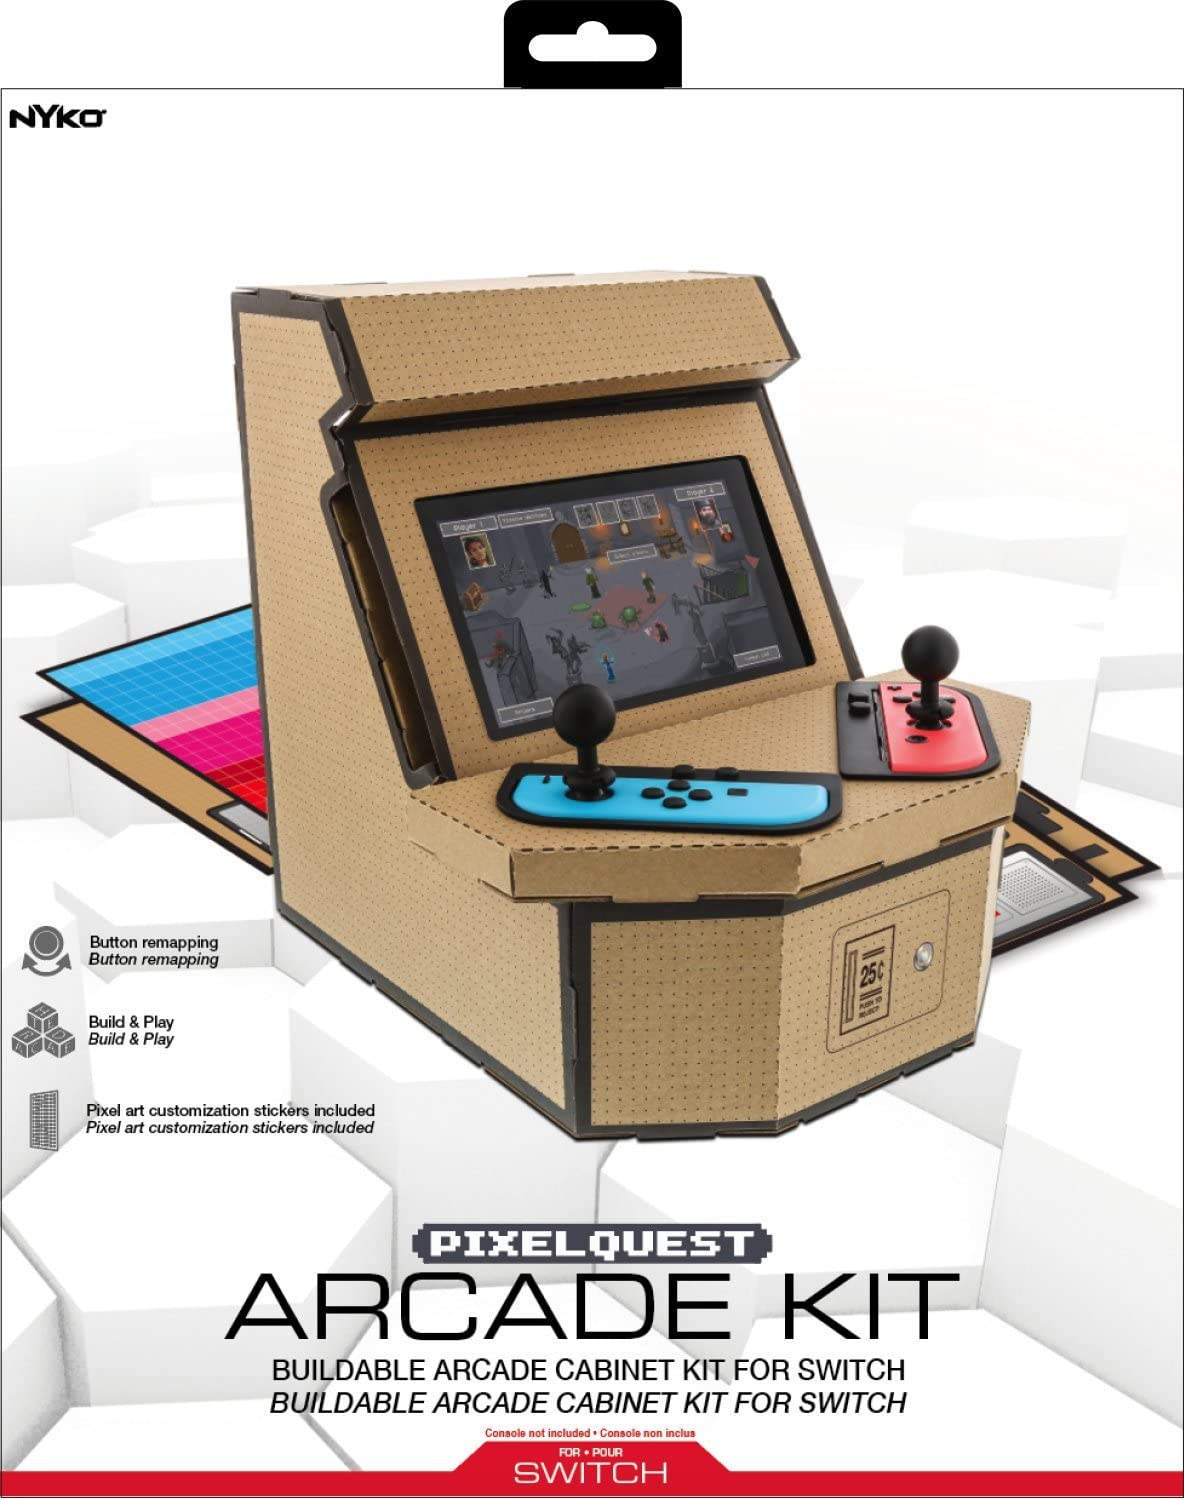 Nyko PixelQuest Arcade Kit - Constructible Arcade Kit with Customizable Pixel Art Sticker Kit and Arcade Stick Toppers for Nintendo Switch [ ] [Importación alemana]: Amazon.es: Videojuegos